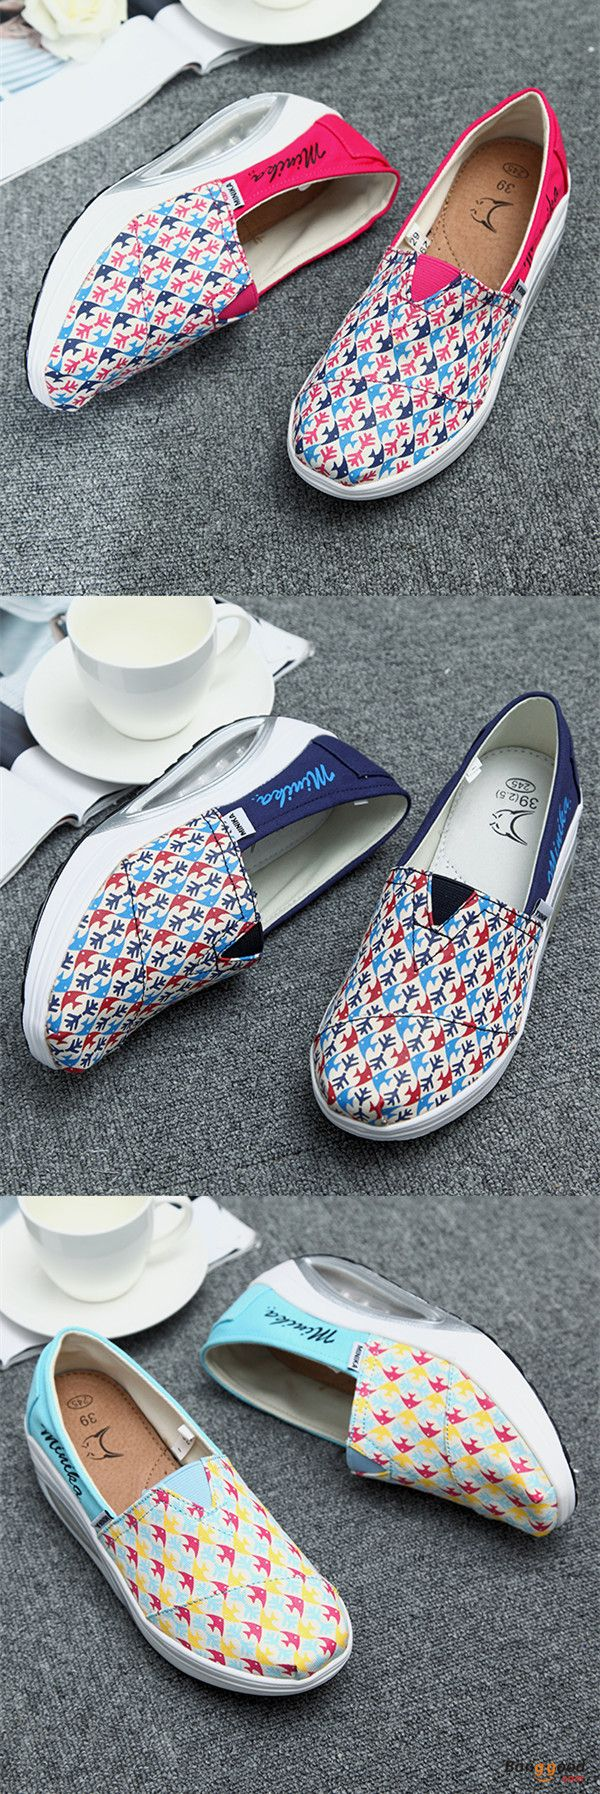 US$29.88 + Free shipping. Size(US): 5~9. Flat Shoes, Shoes for Women, Outdoor Athletic Shoes, Womens Fashion, Womens Shoes, Summer Outfits.Color: Blue, Red, Dark Blue. Upper Material: Canvas. Casual and comfortable! Love style!